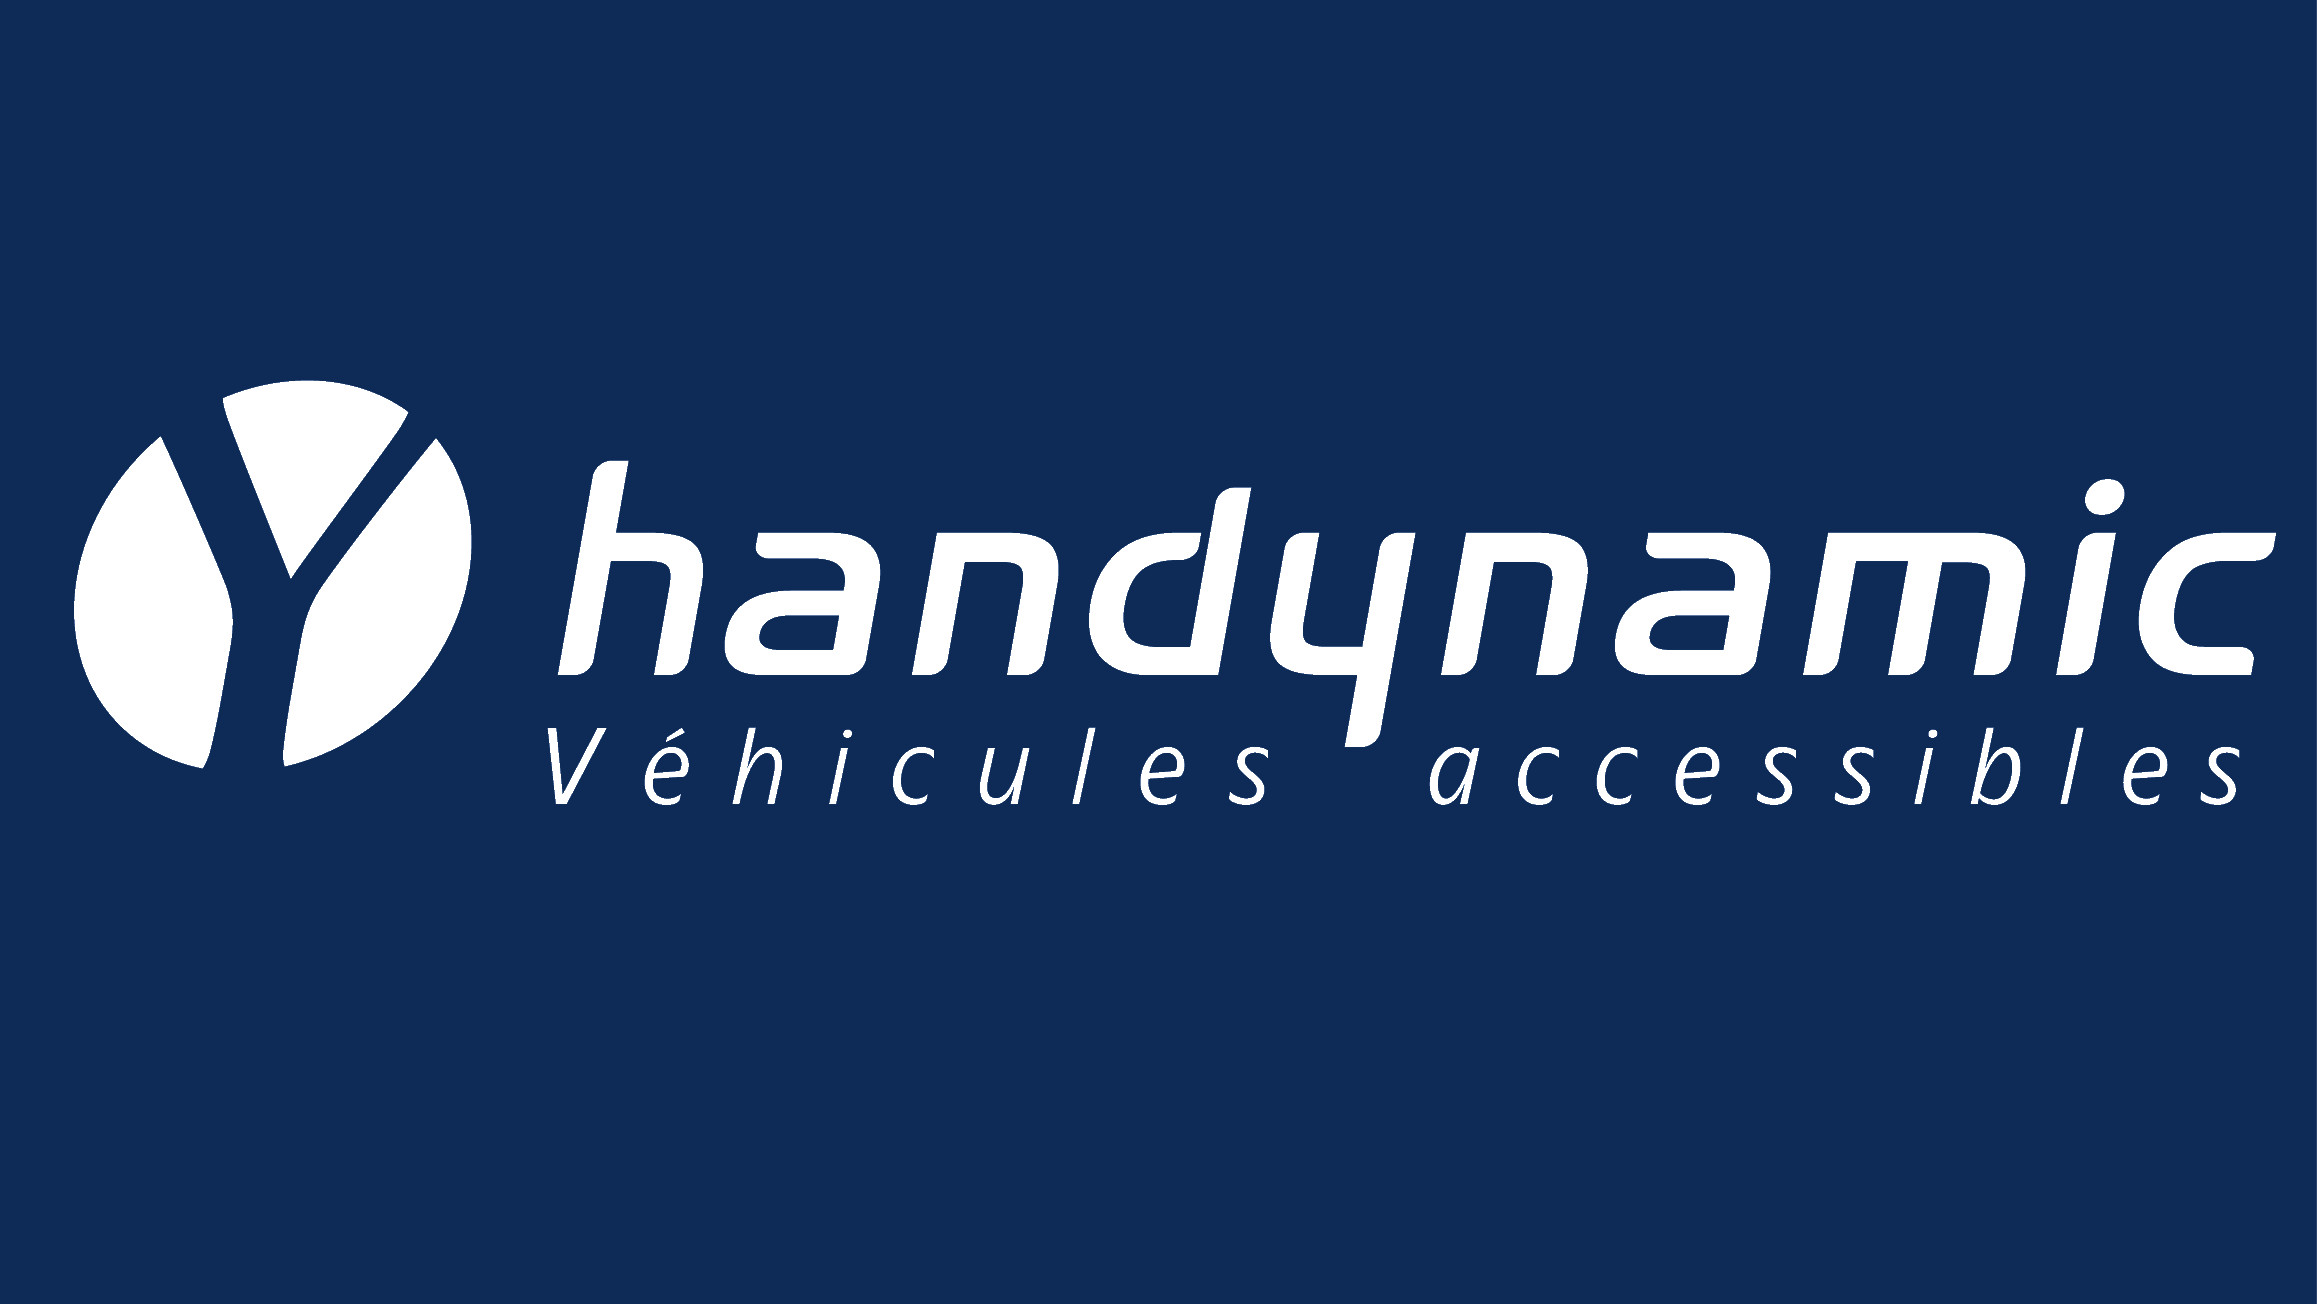 handynamic